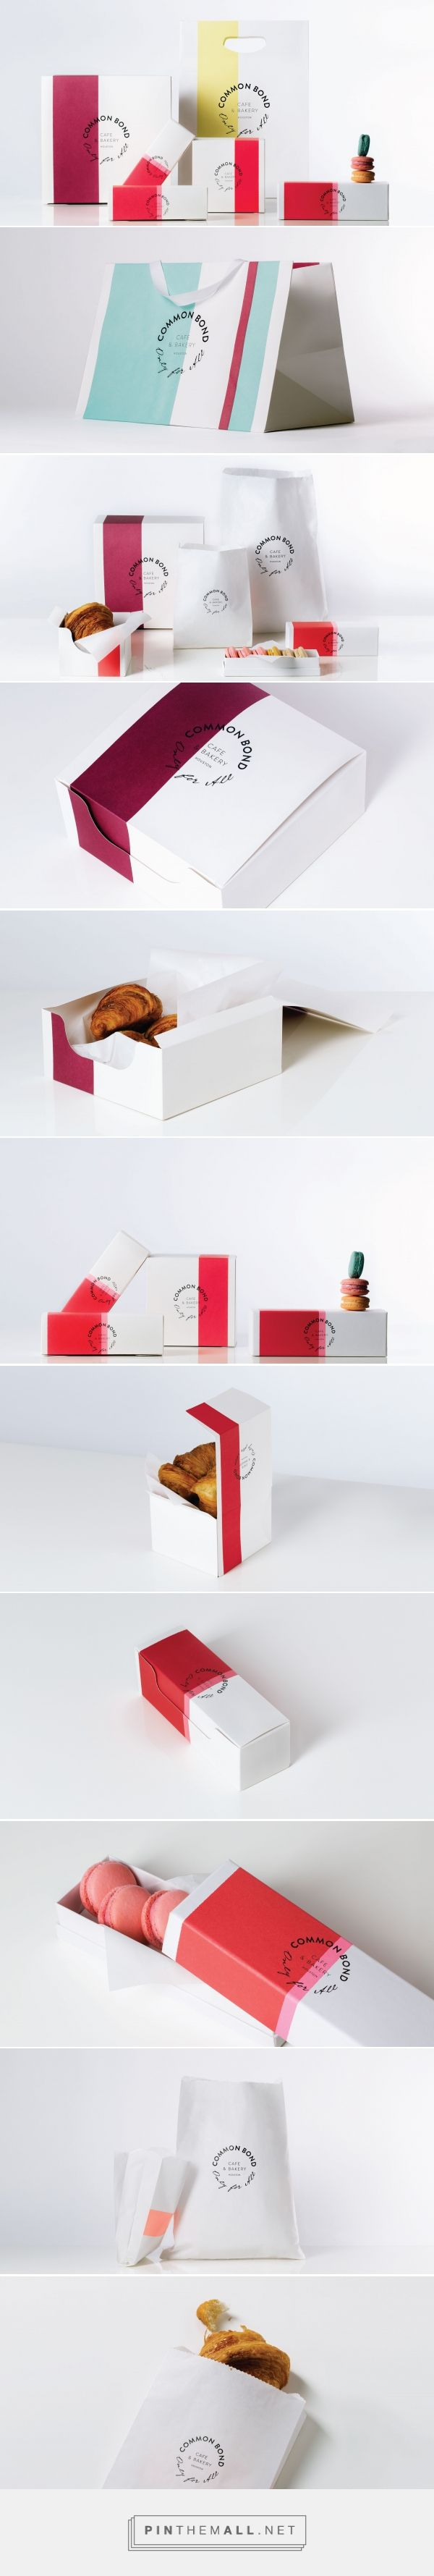 Common Bond | Packaging and Sourcing | Creative Retail Packaging - created via https://pinthemall.net